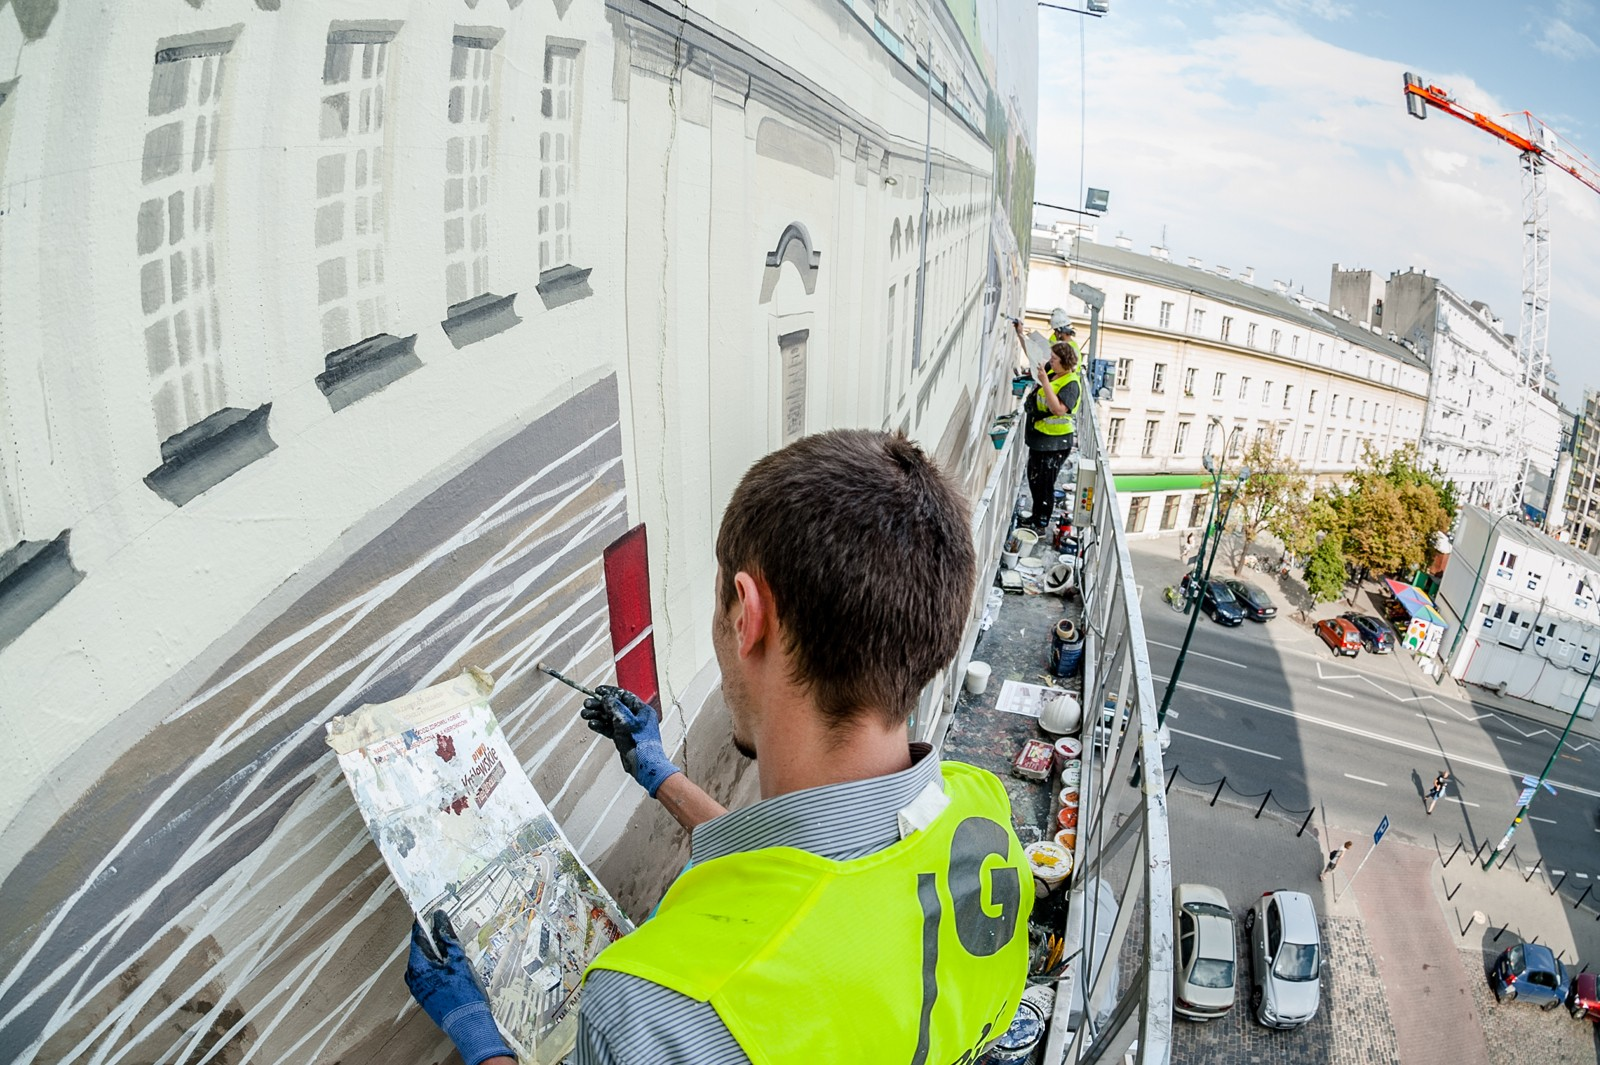 Artist at work painting a mural on a wall at 25 Bracka street in Warsaw city centre | Krolewskie unfiltered | Portfolio